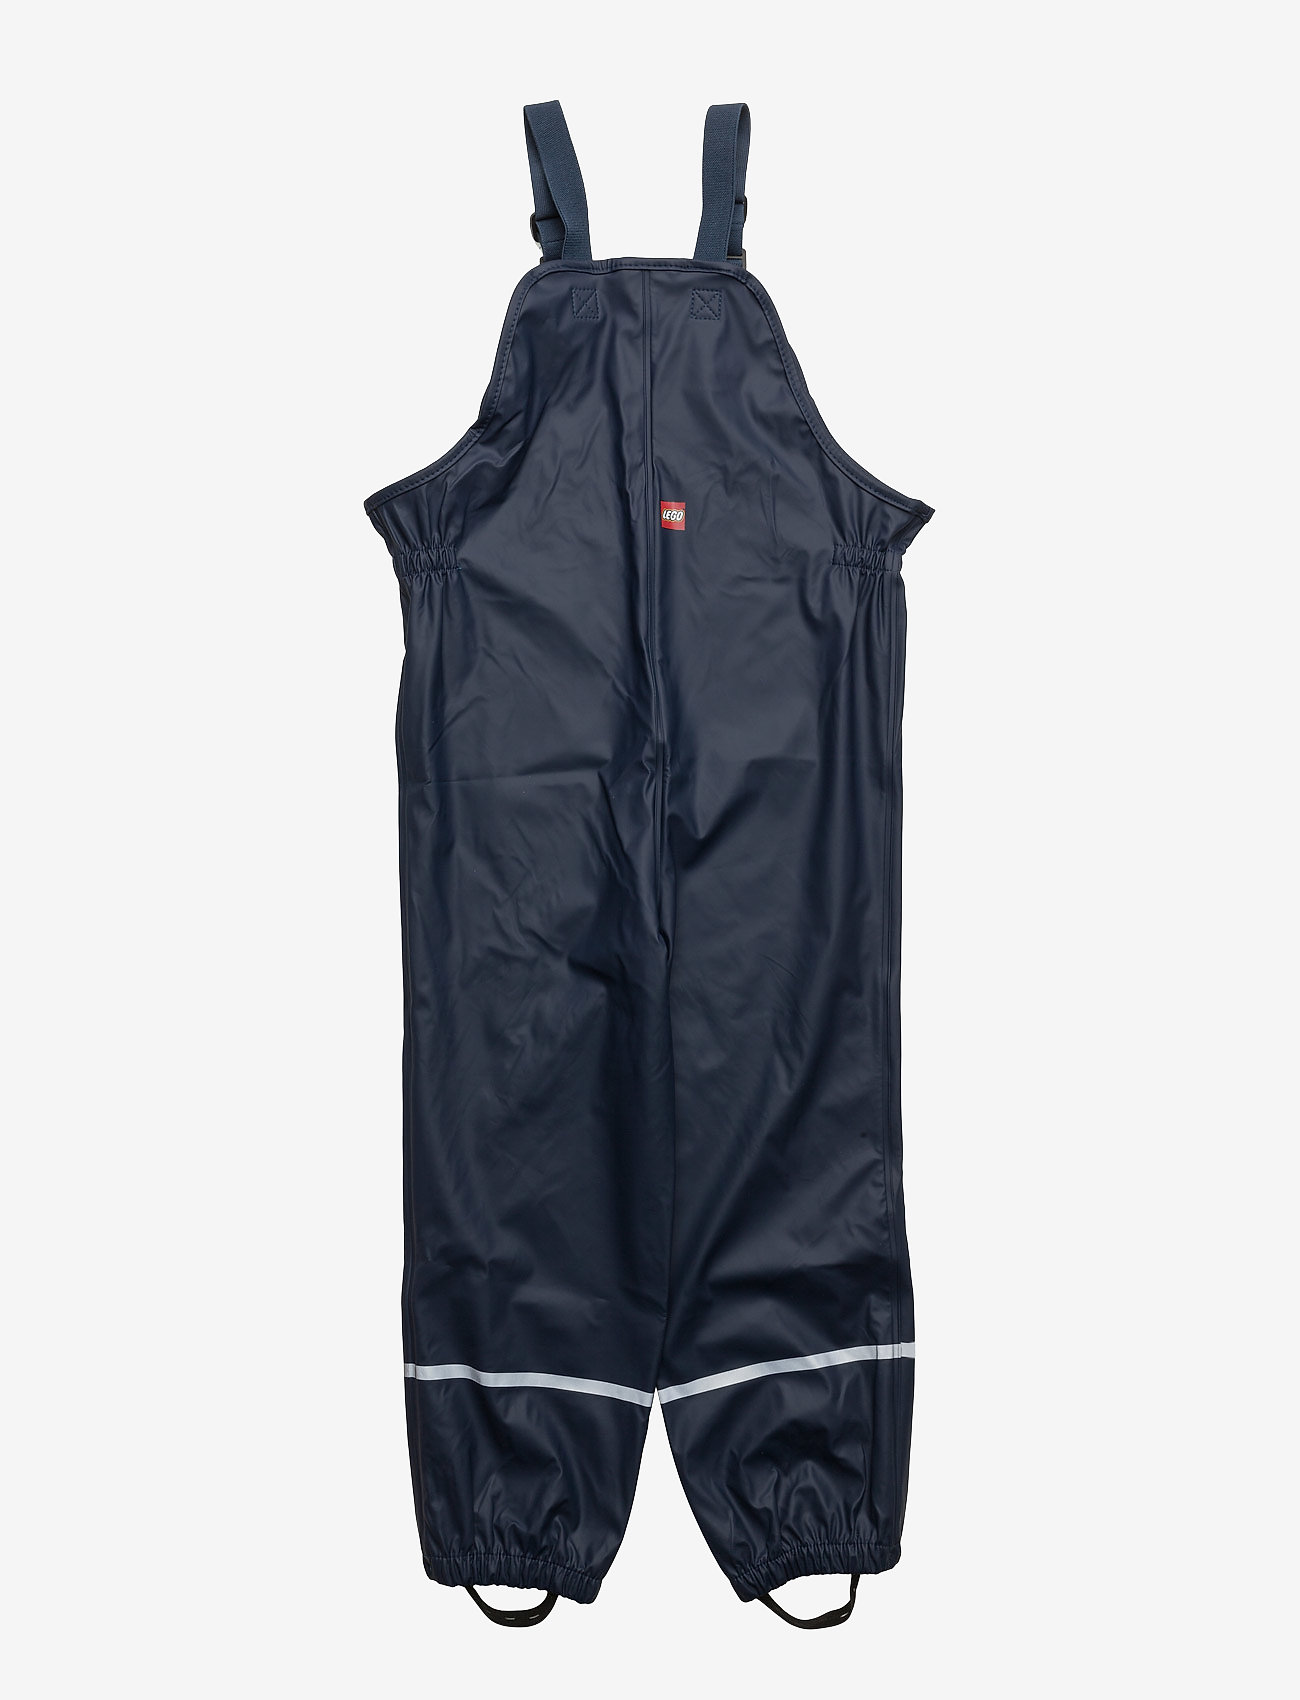 Lego wear - POWER 101 - RAIN PANTS - dark navy - 1